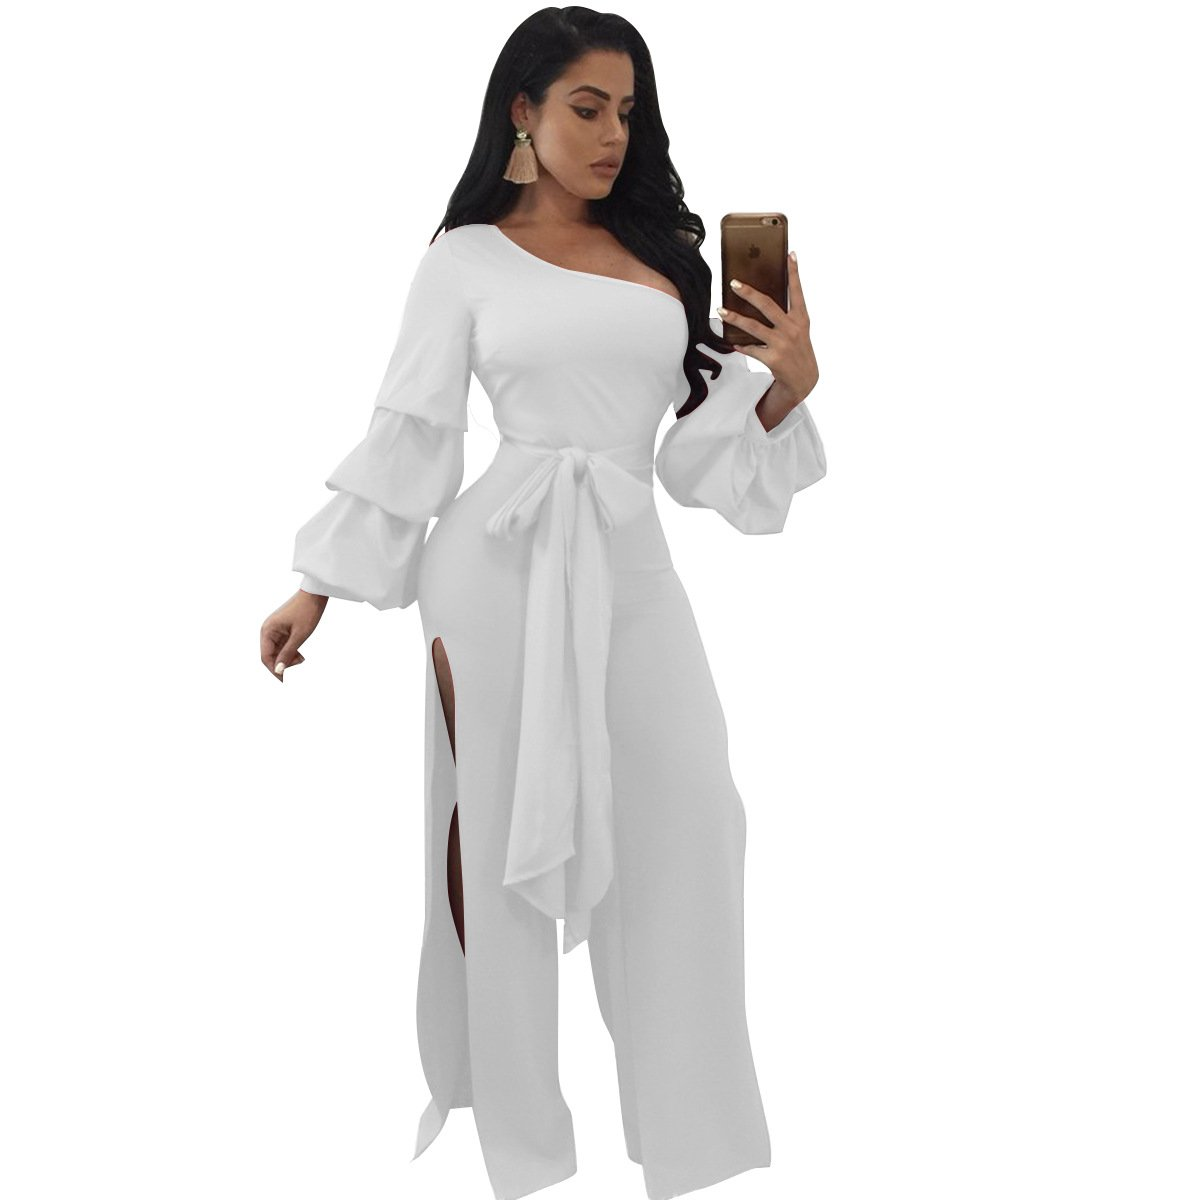 Speedle Womens Sloping Shoulder Long Sleeves Double Layers Lace up Split Jumpsuit Romper White L